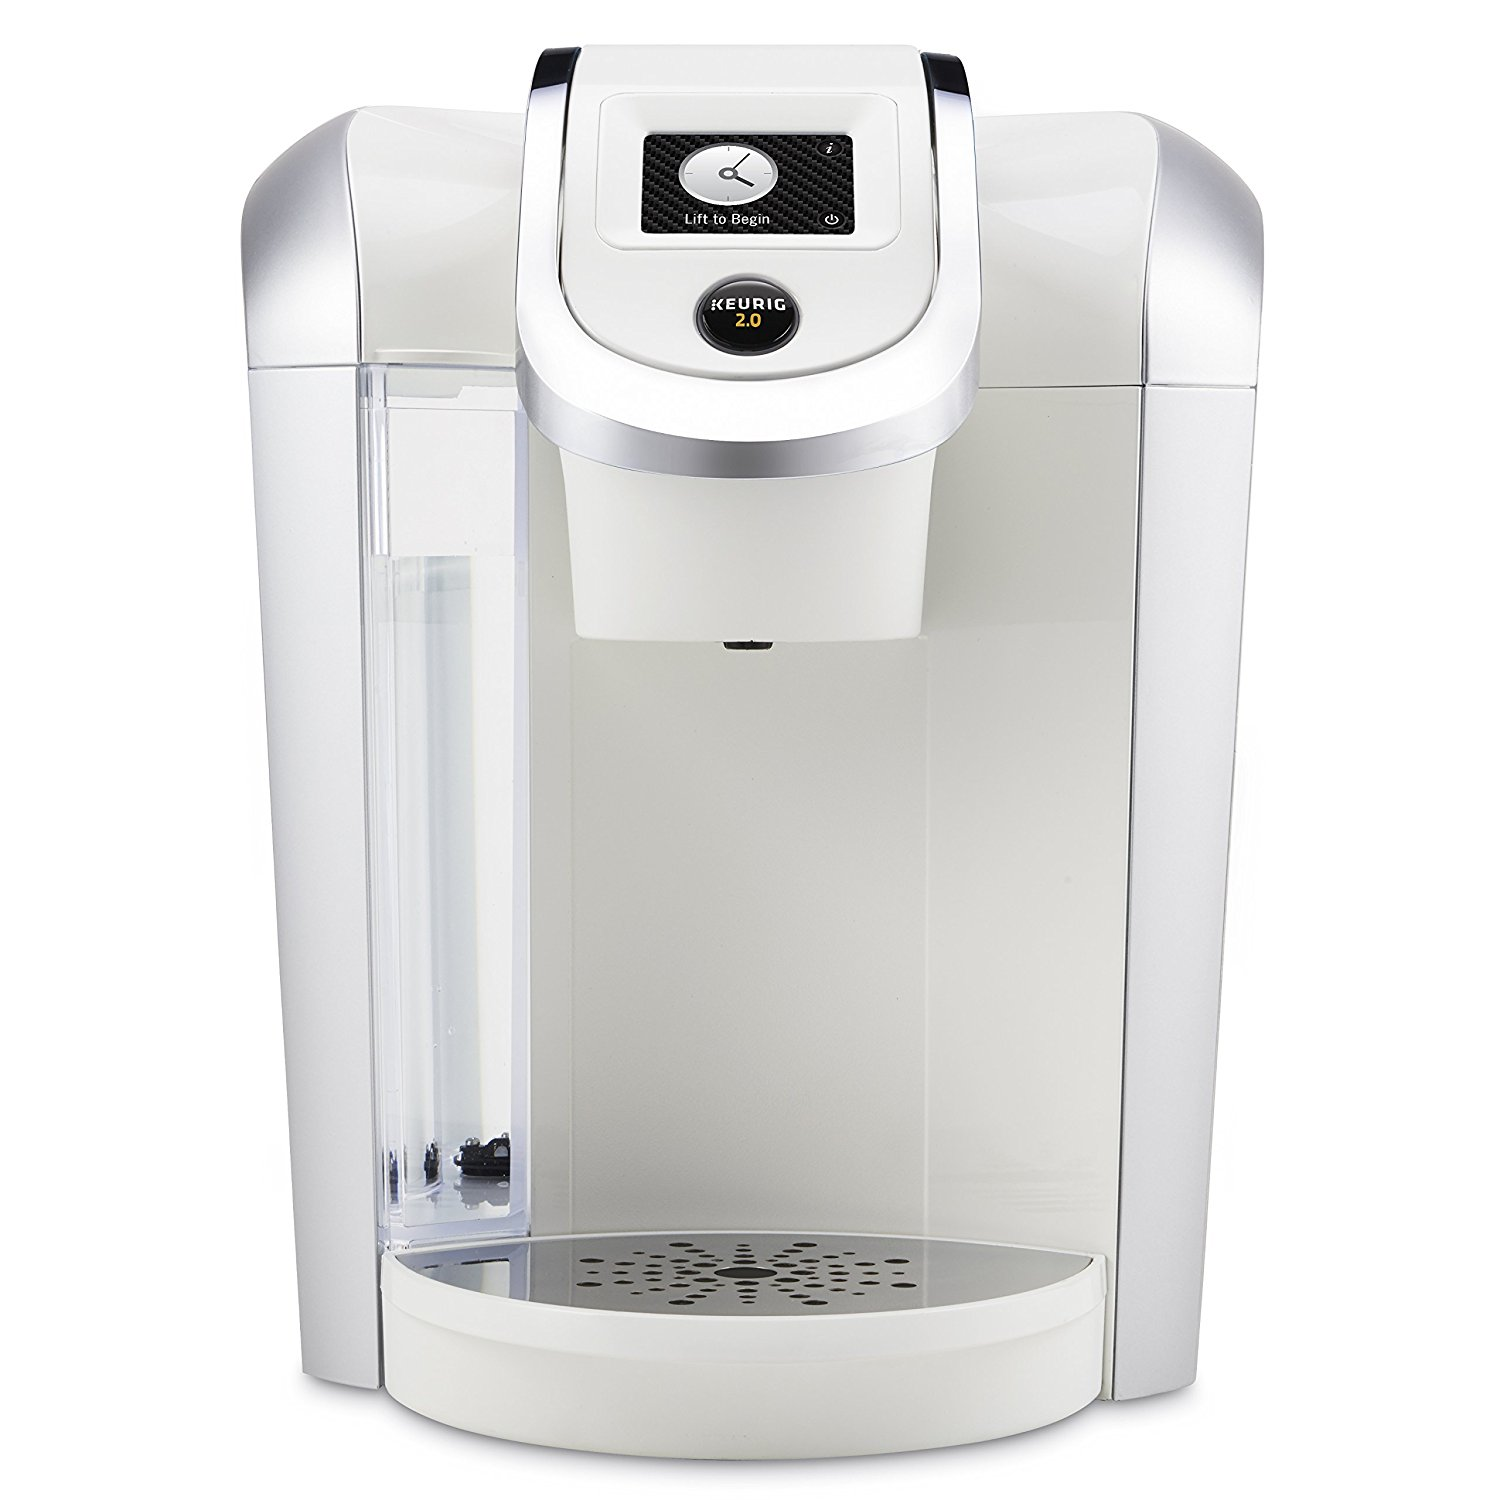 Keurig 2.0 K475 White Brewing System with Color Touch Display